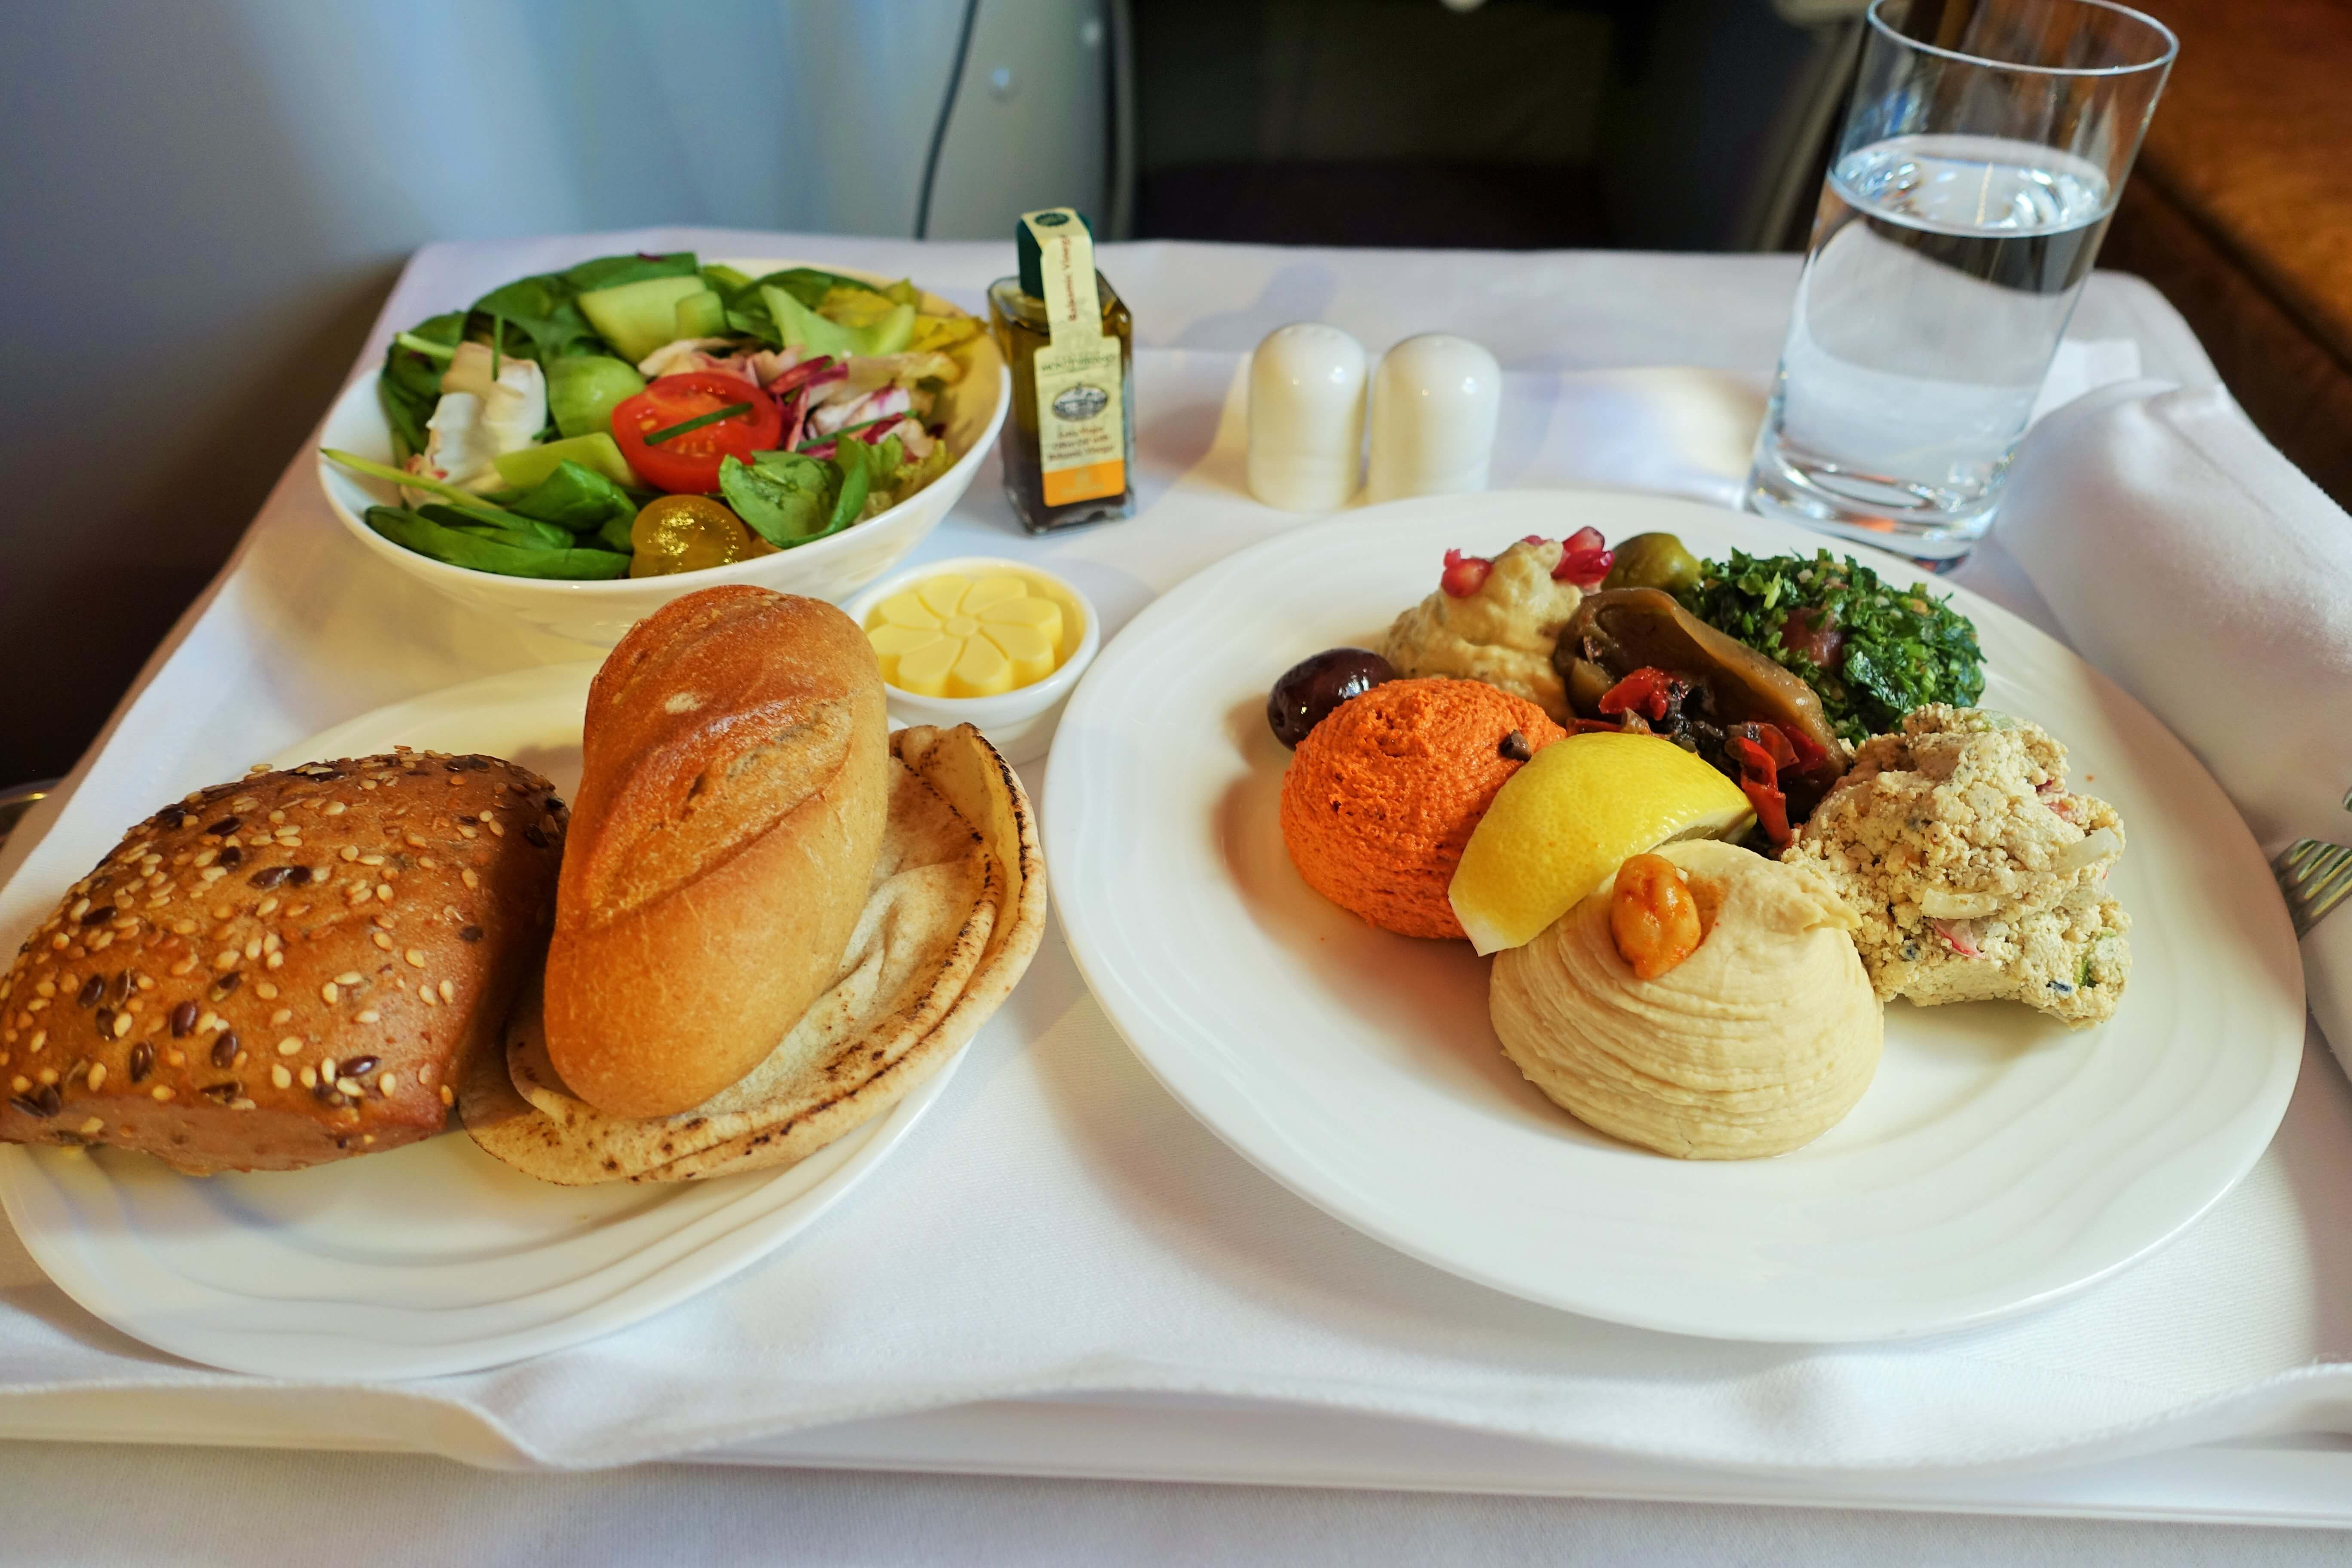 Emirates business meal, meze plate, salad, bread rolls on tray